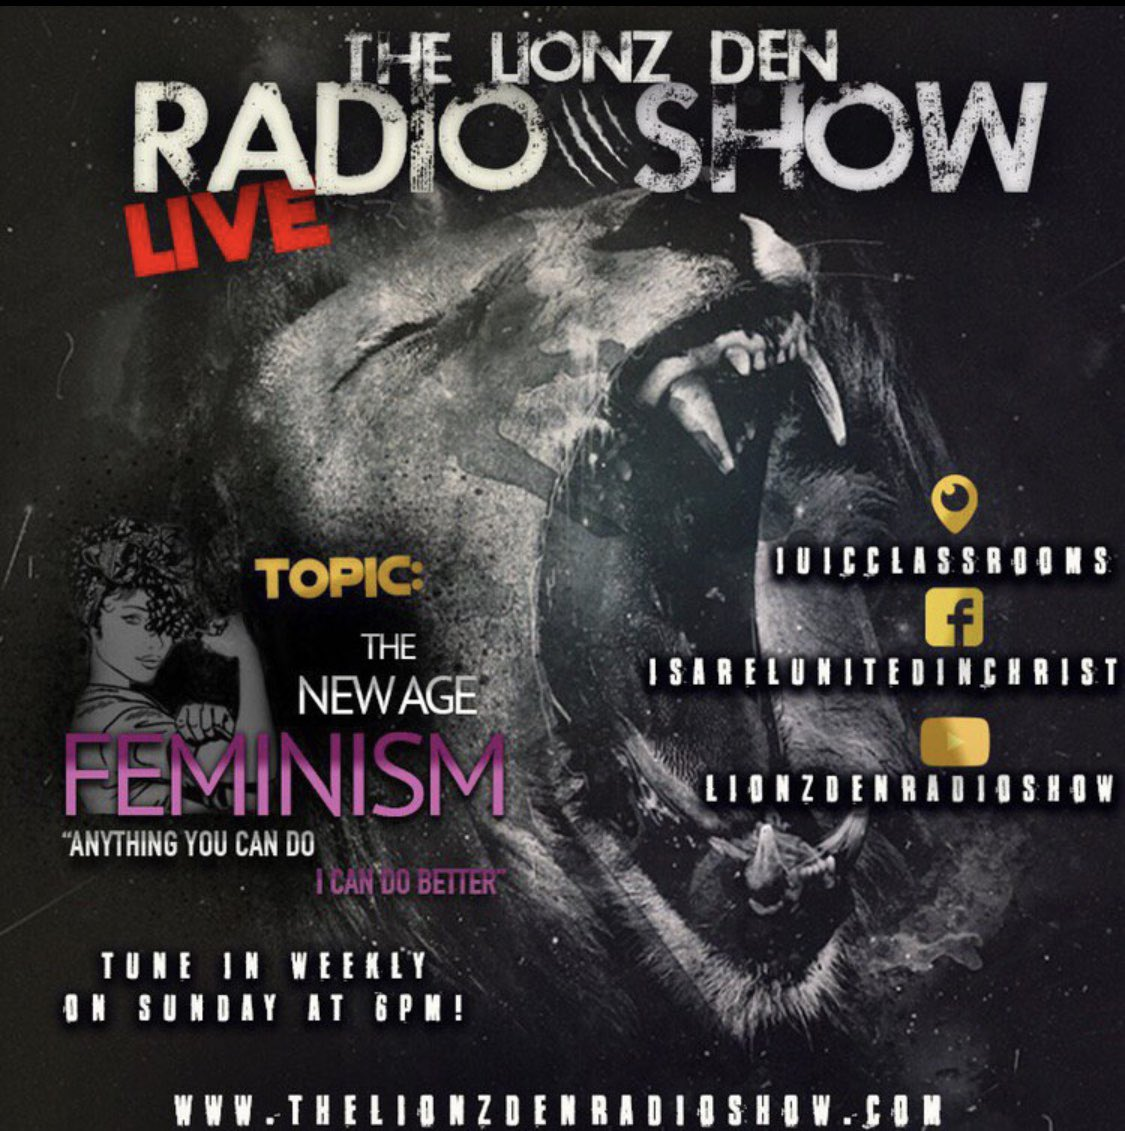 """Tune in Sunday for the #1 #Sunday #Night #RadioShow the #LionzDenRadio Show where """"We Dont Ignore Evil, We Only Seek To Expose it"""" See you at 6pm! This weeks topic: New Age Feminism """"Anything You Can Do, I can Do Better"""""""